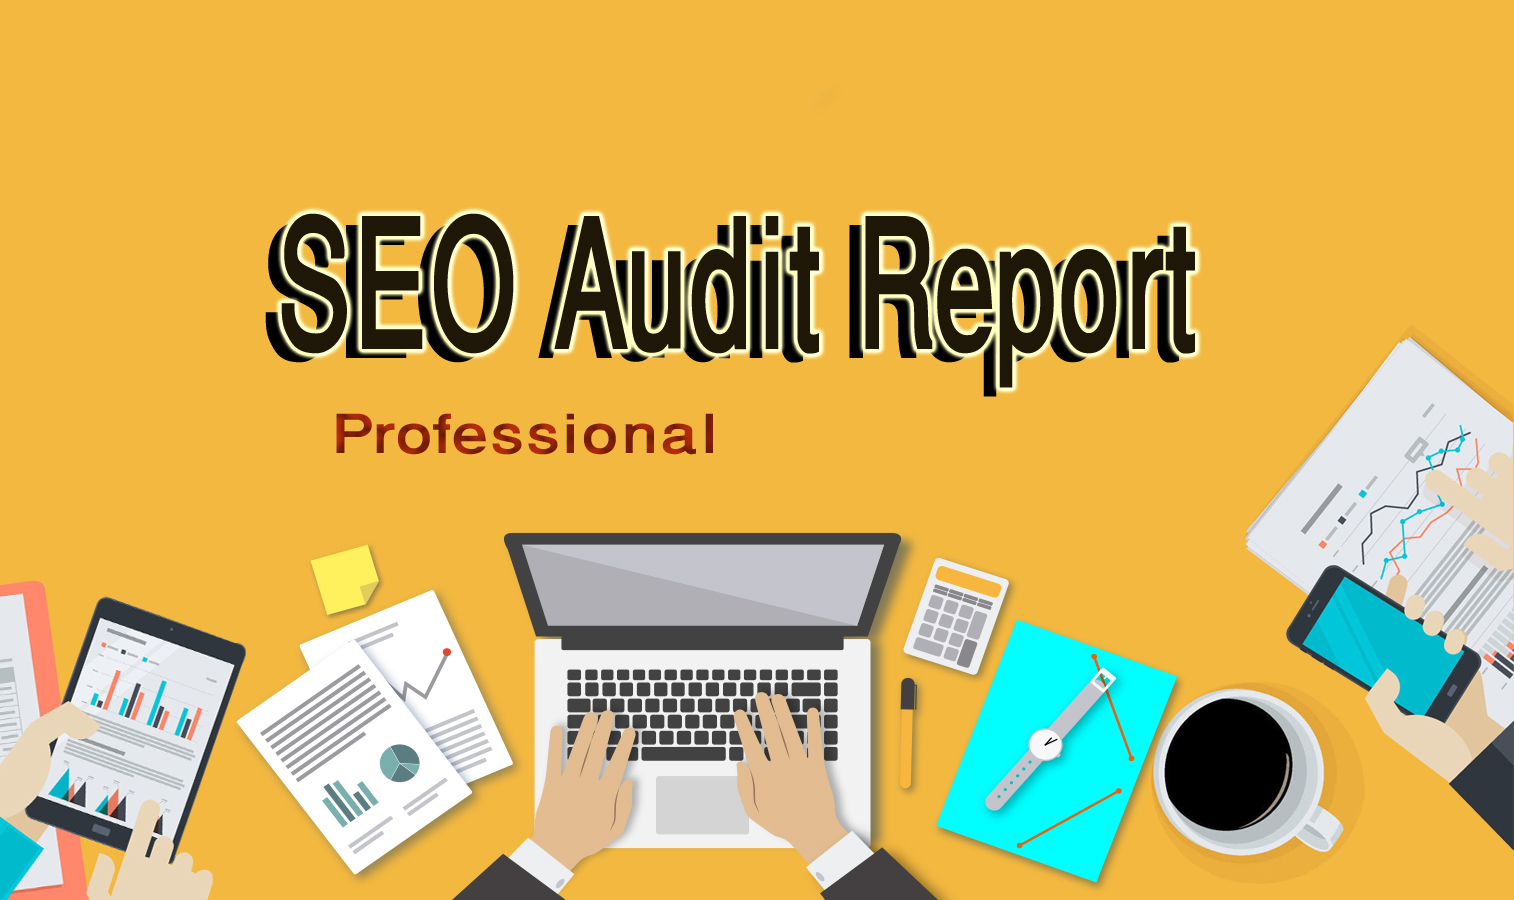 I will do professional SEO audit report